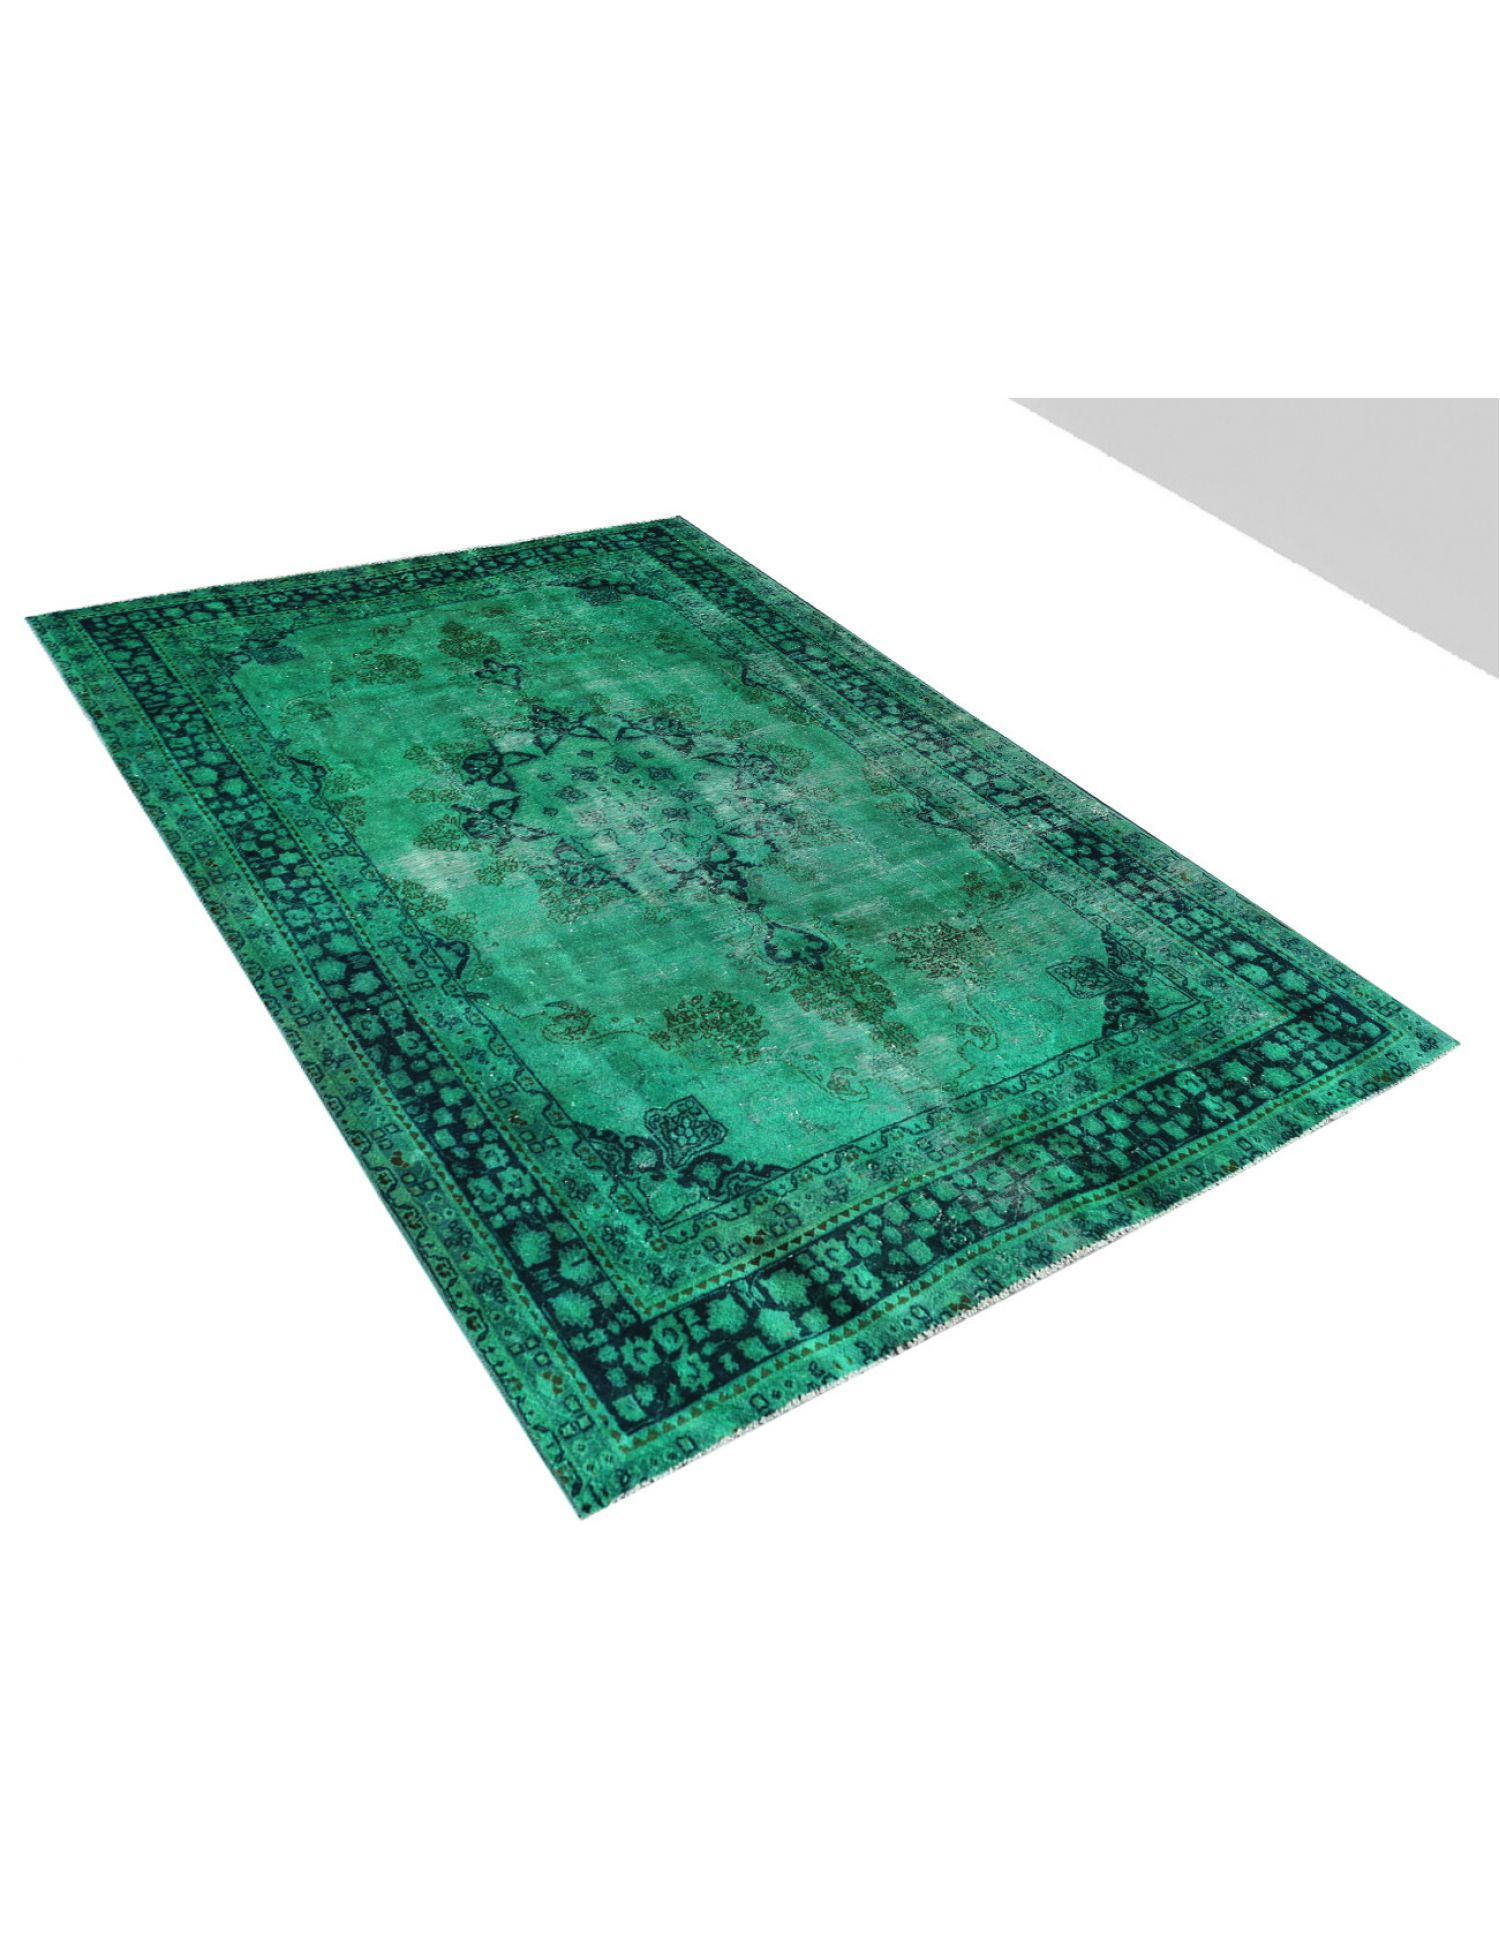 Vintage Carpet  green <br/>278 x 192 cm